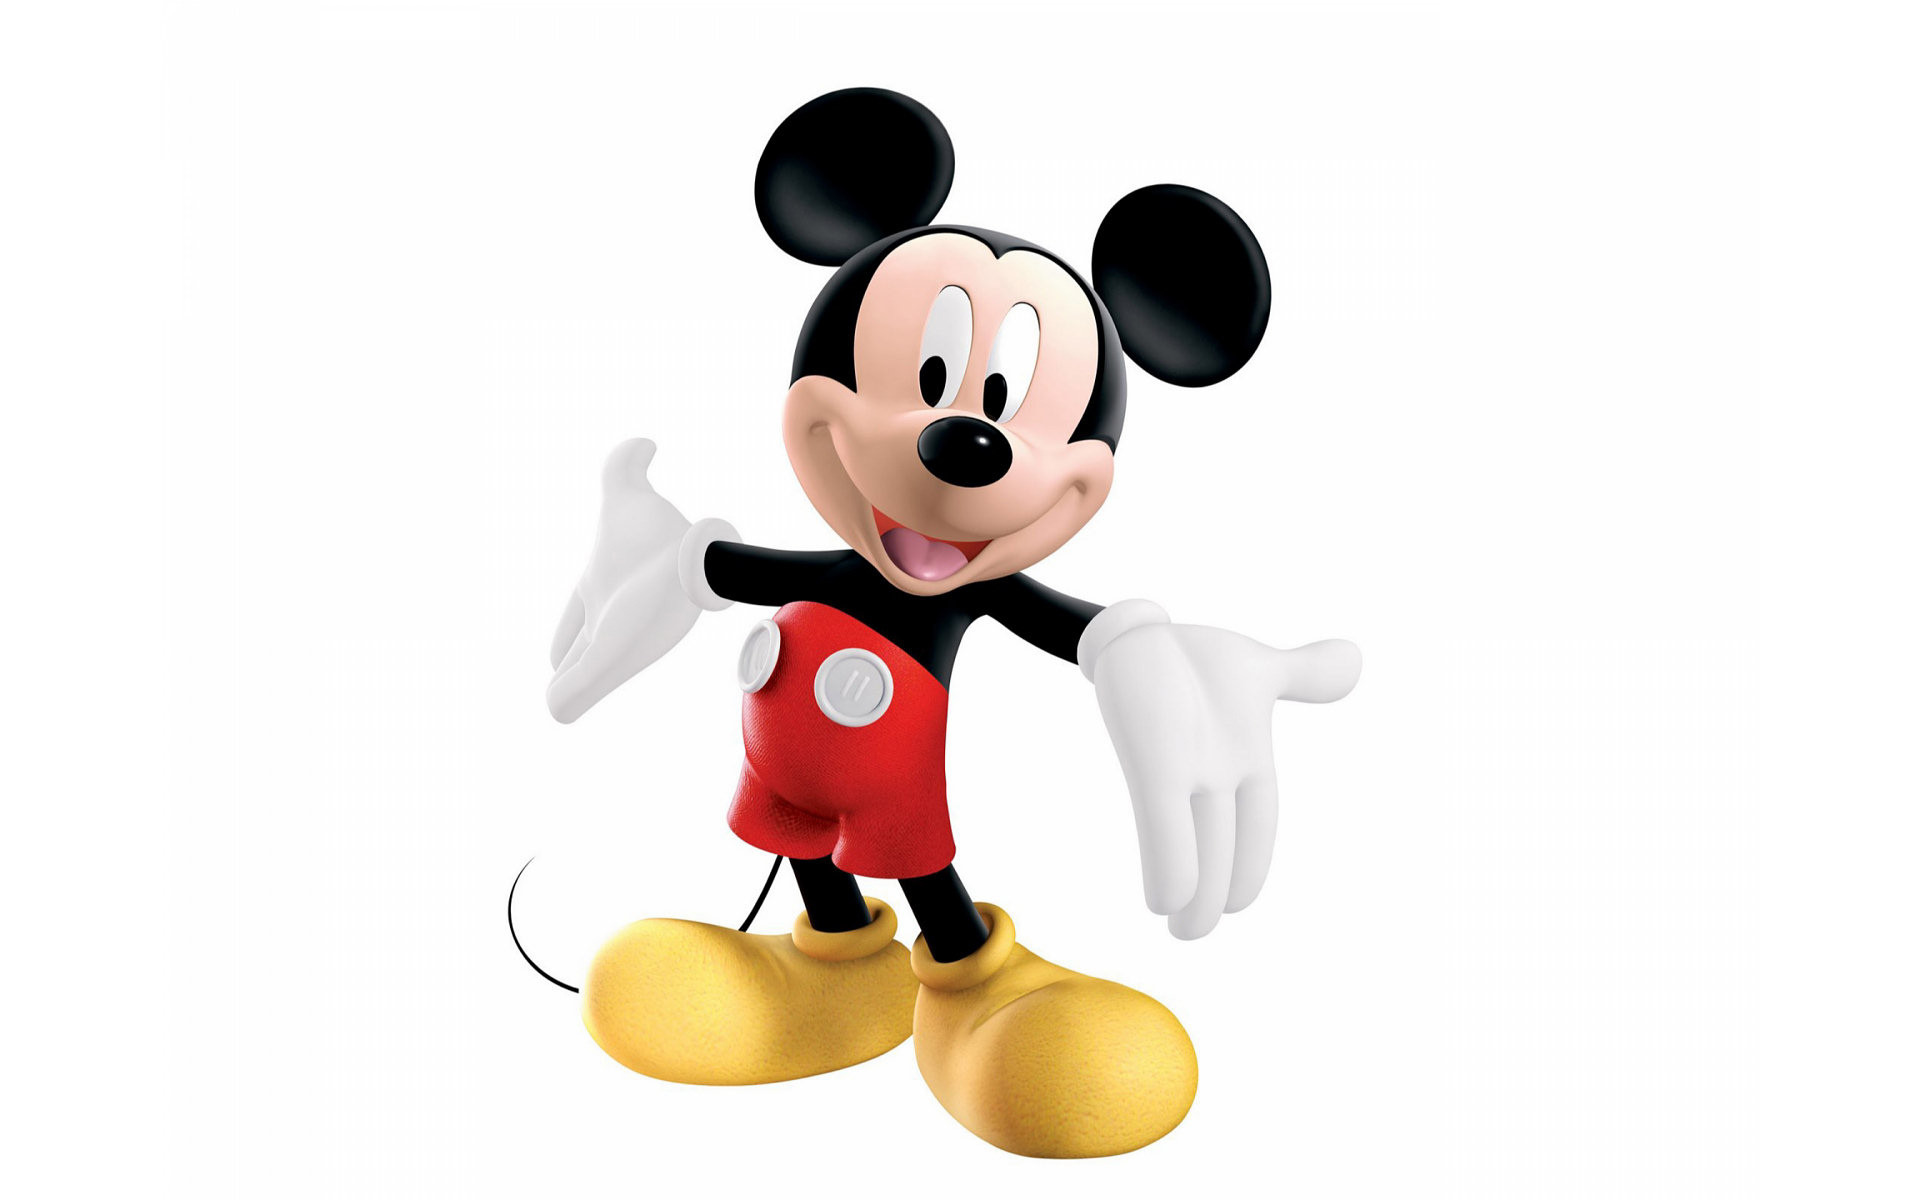 Mickey Mouse HD Images : Get Free top quality Mickey Mouse HD Images for  your desktop PC background, ios or android mobile phones at WOWHDBackgroun…